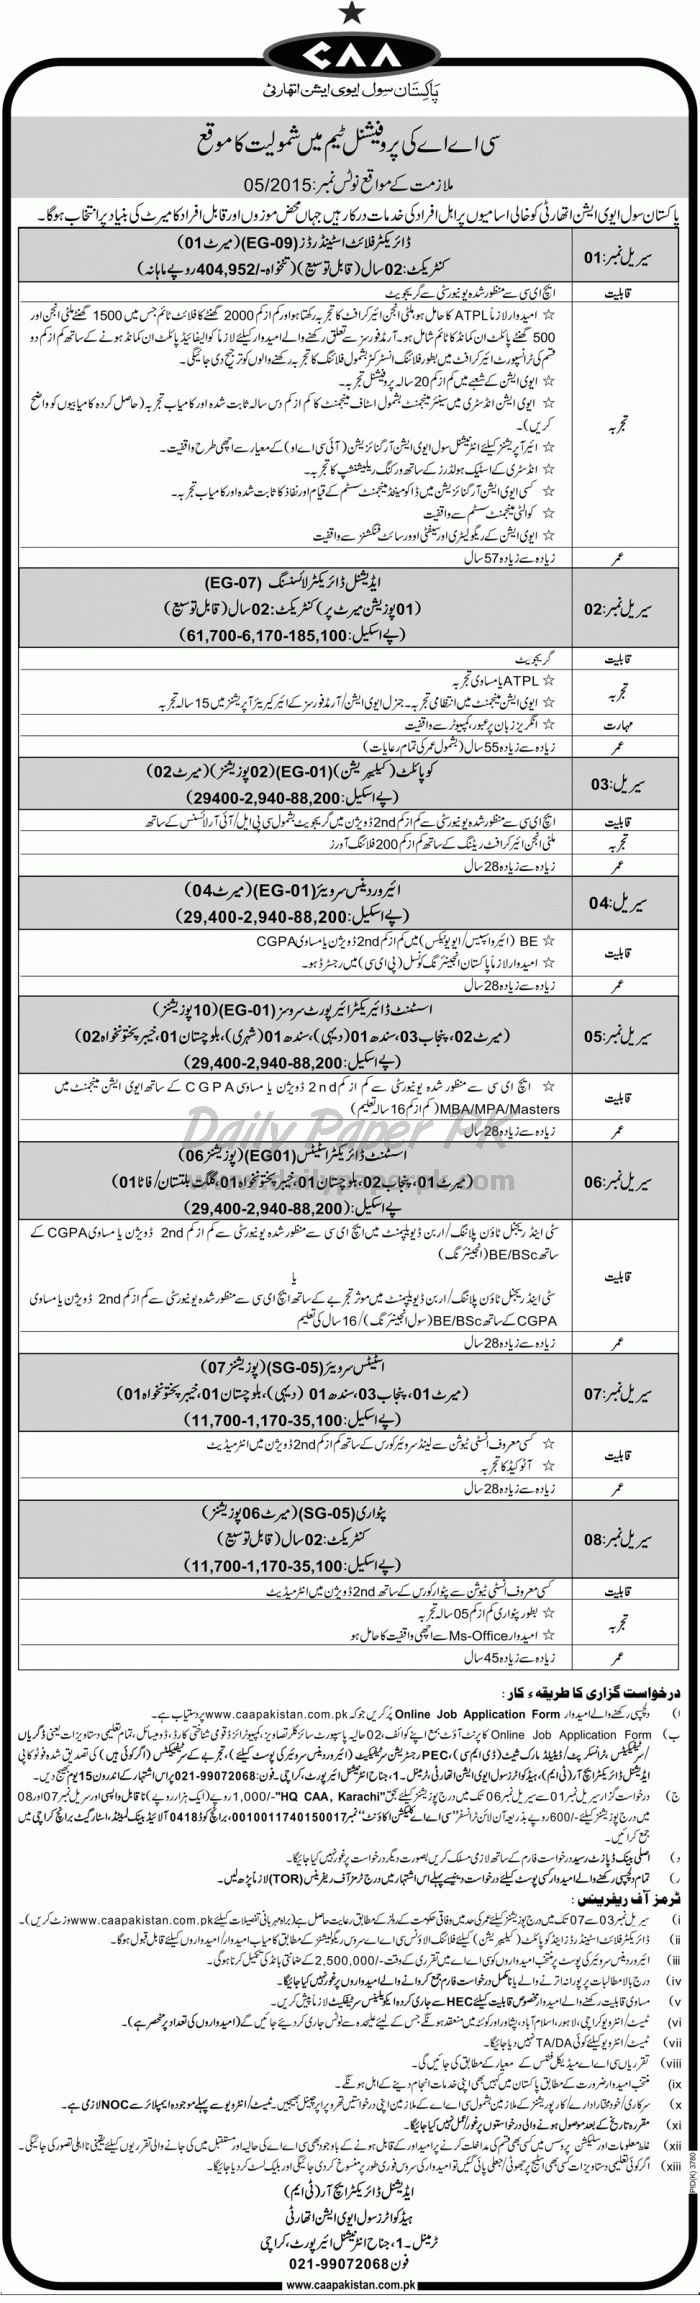 Opportunity to Be Part of Pakistan Civil Aviation Authority CAA Professional Team For #jobs detail and how to apply: #paperpk http://www.dailypaperpk.com/jobs/236869/opportunity-to-be-part-pakistan-civil-aviation-authority-caa-professional-team